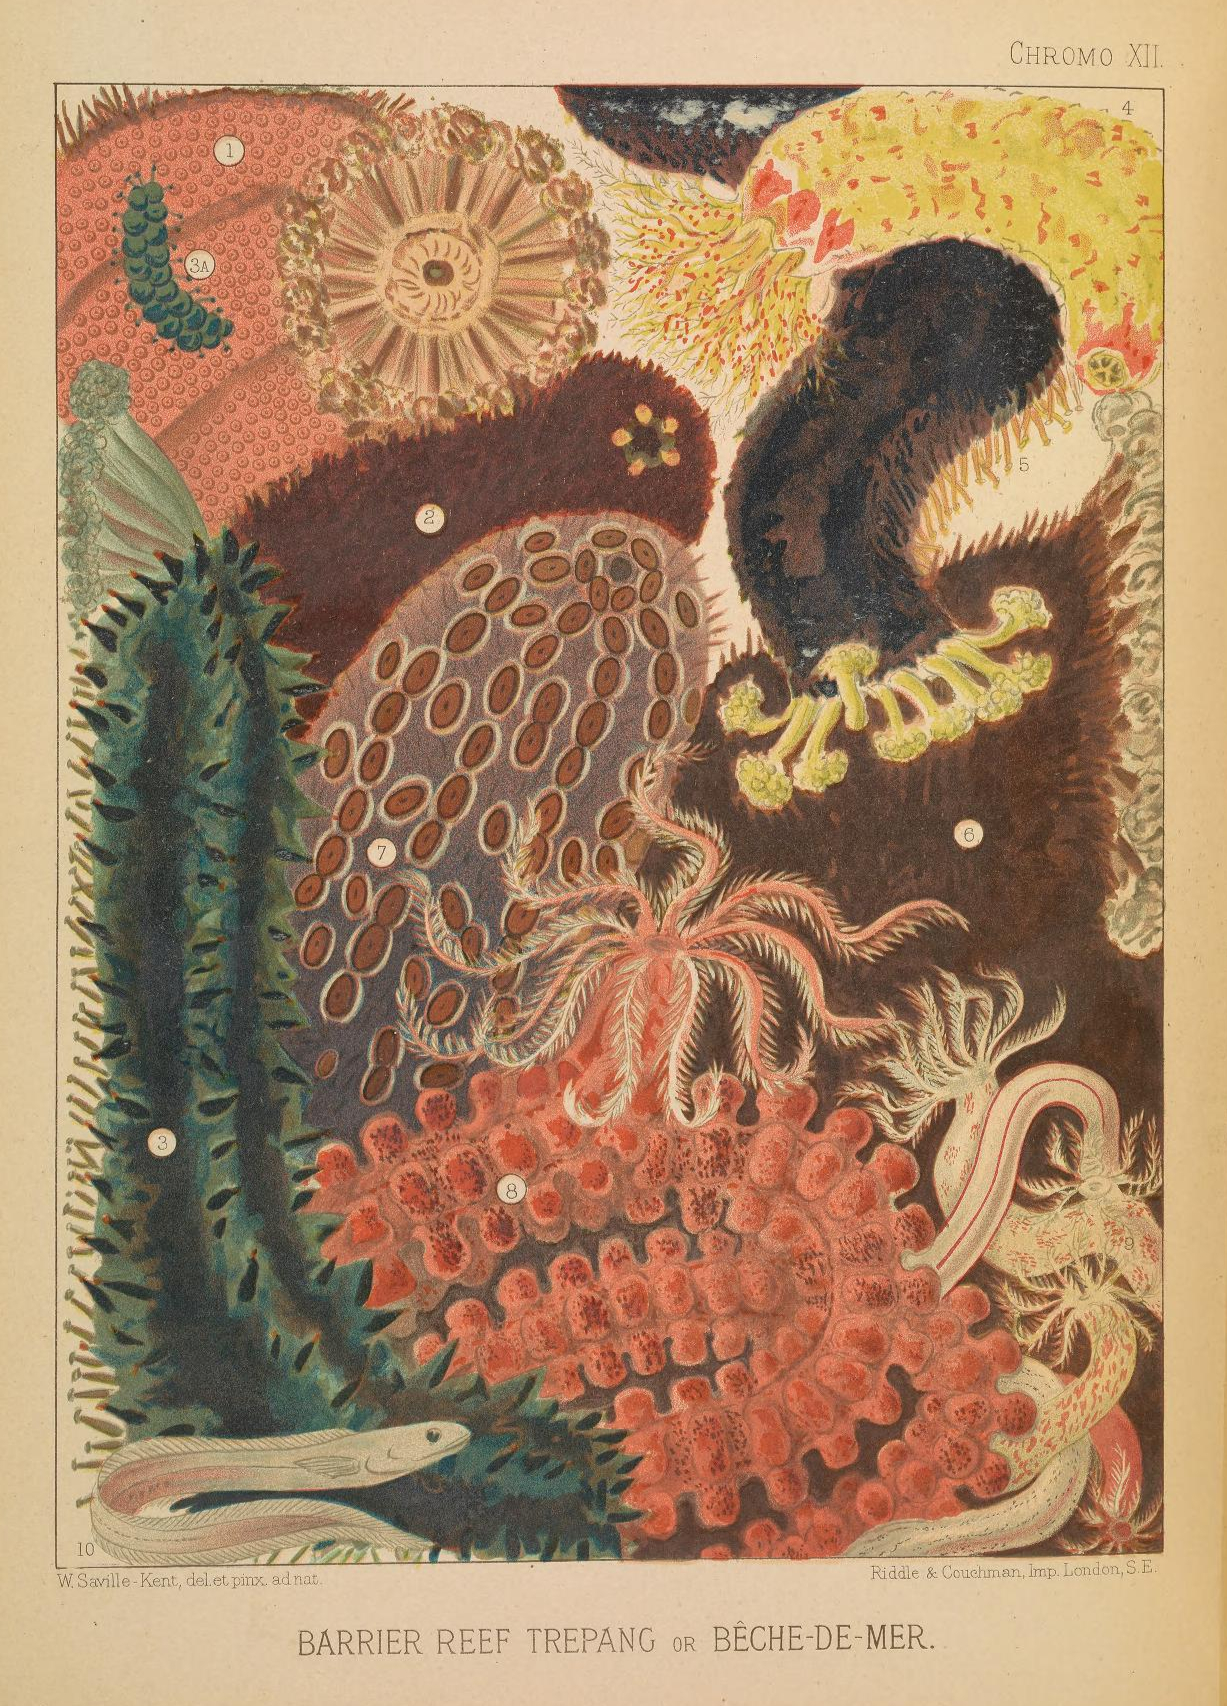 Vintage public domain illustrations of great barrier reef sea cucumber